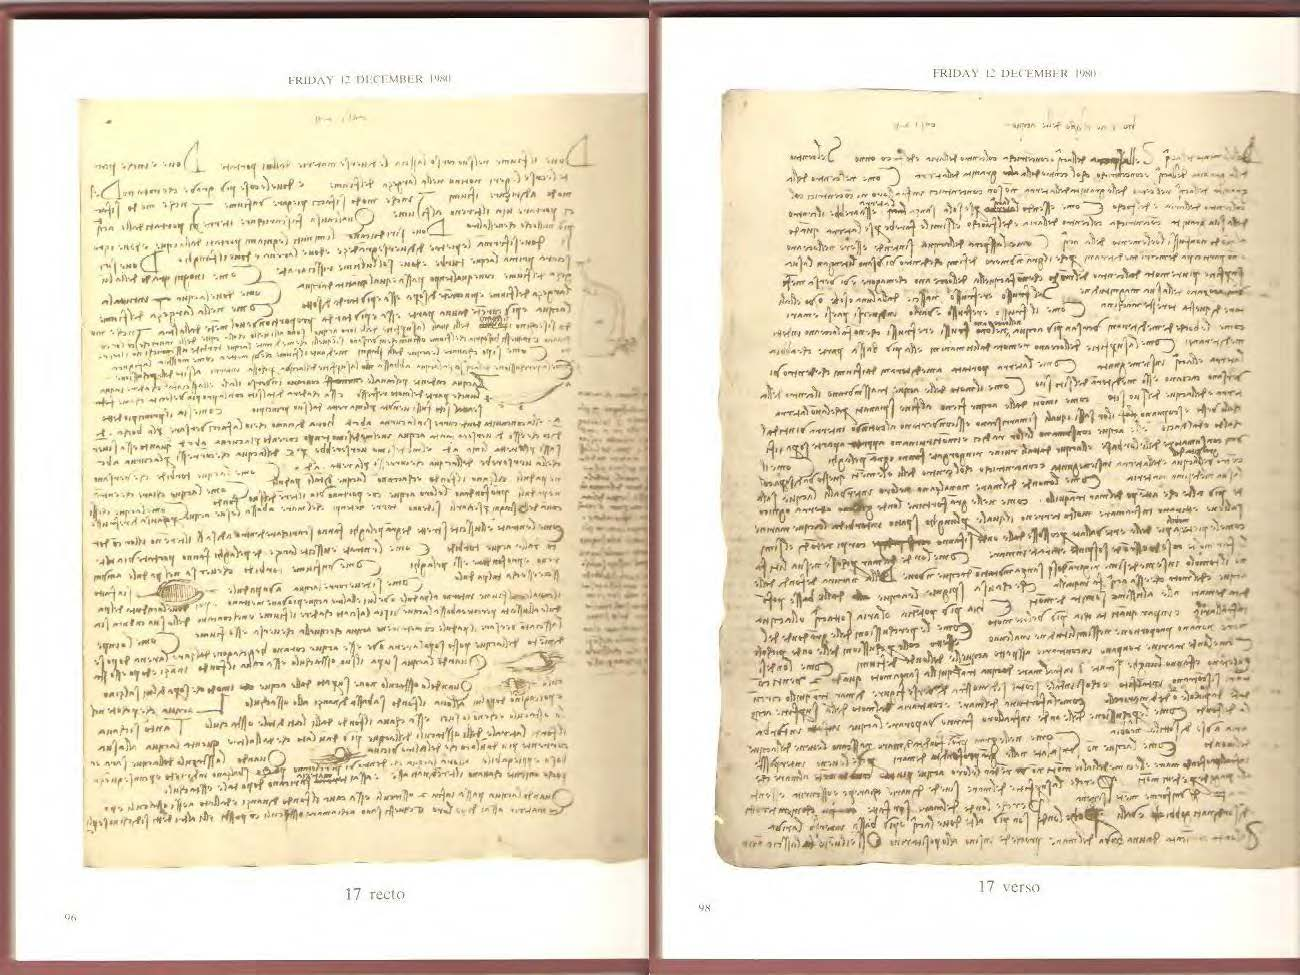 Codex_Leicester_Page_18_Image_0001.jpg